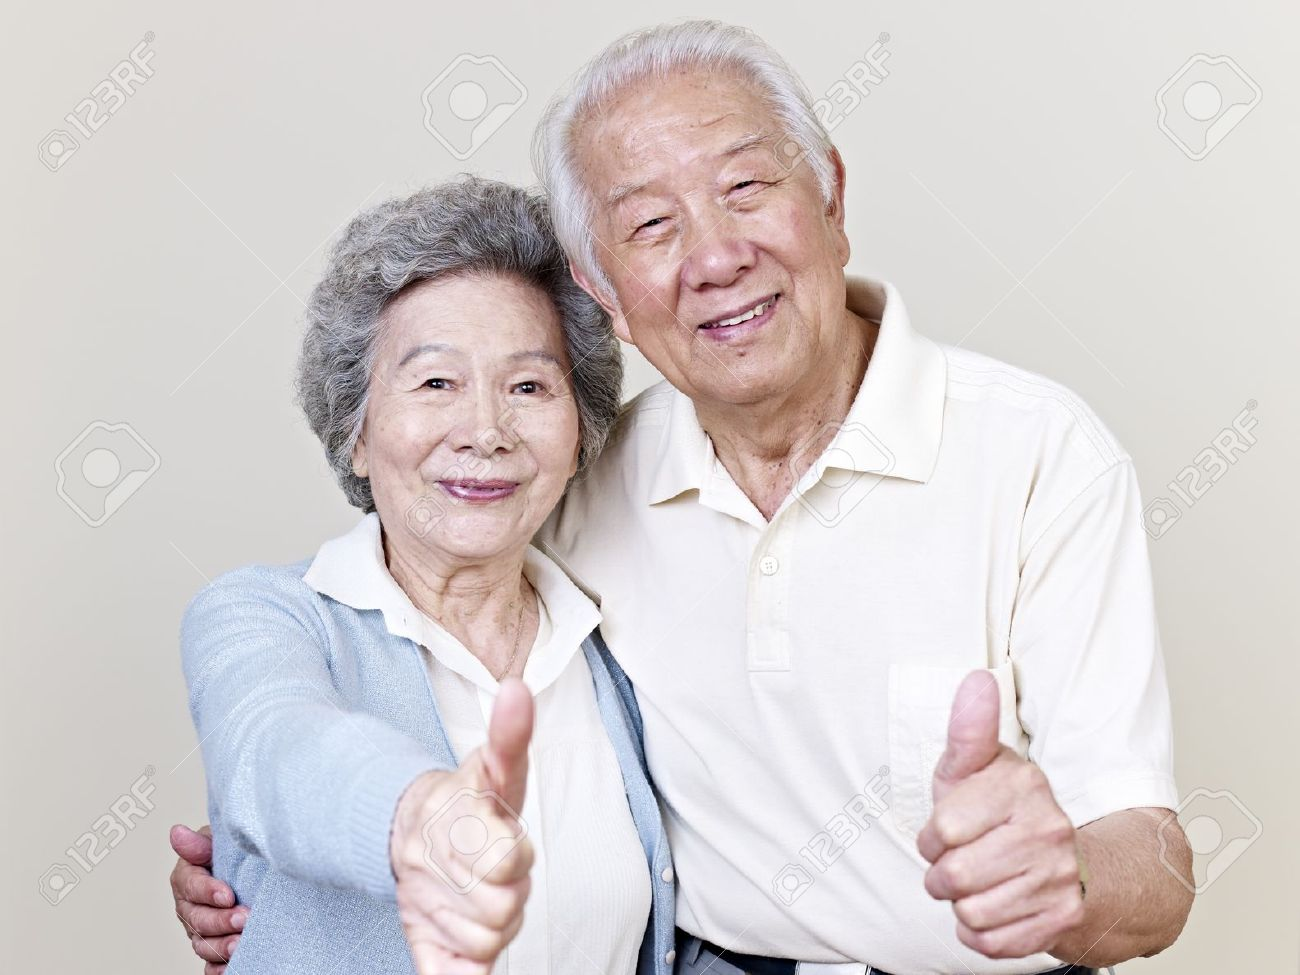 Couple thumbs images 8